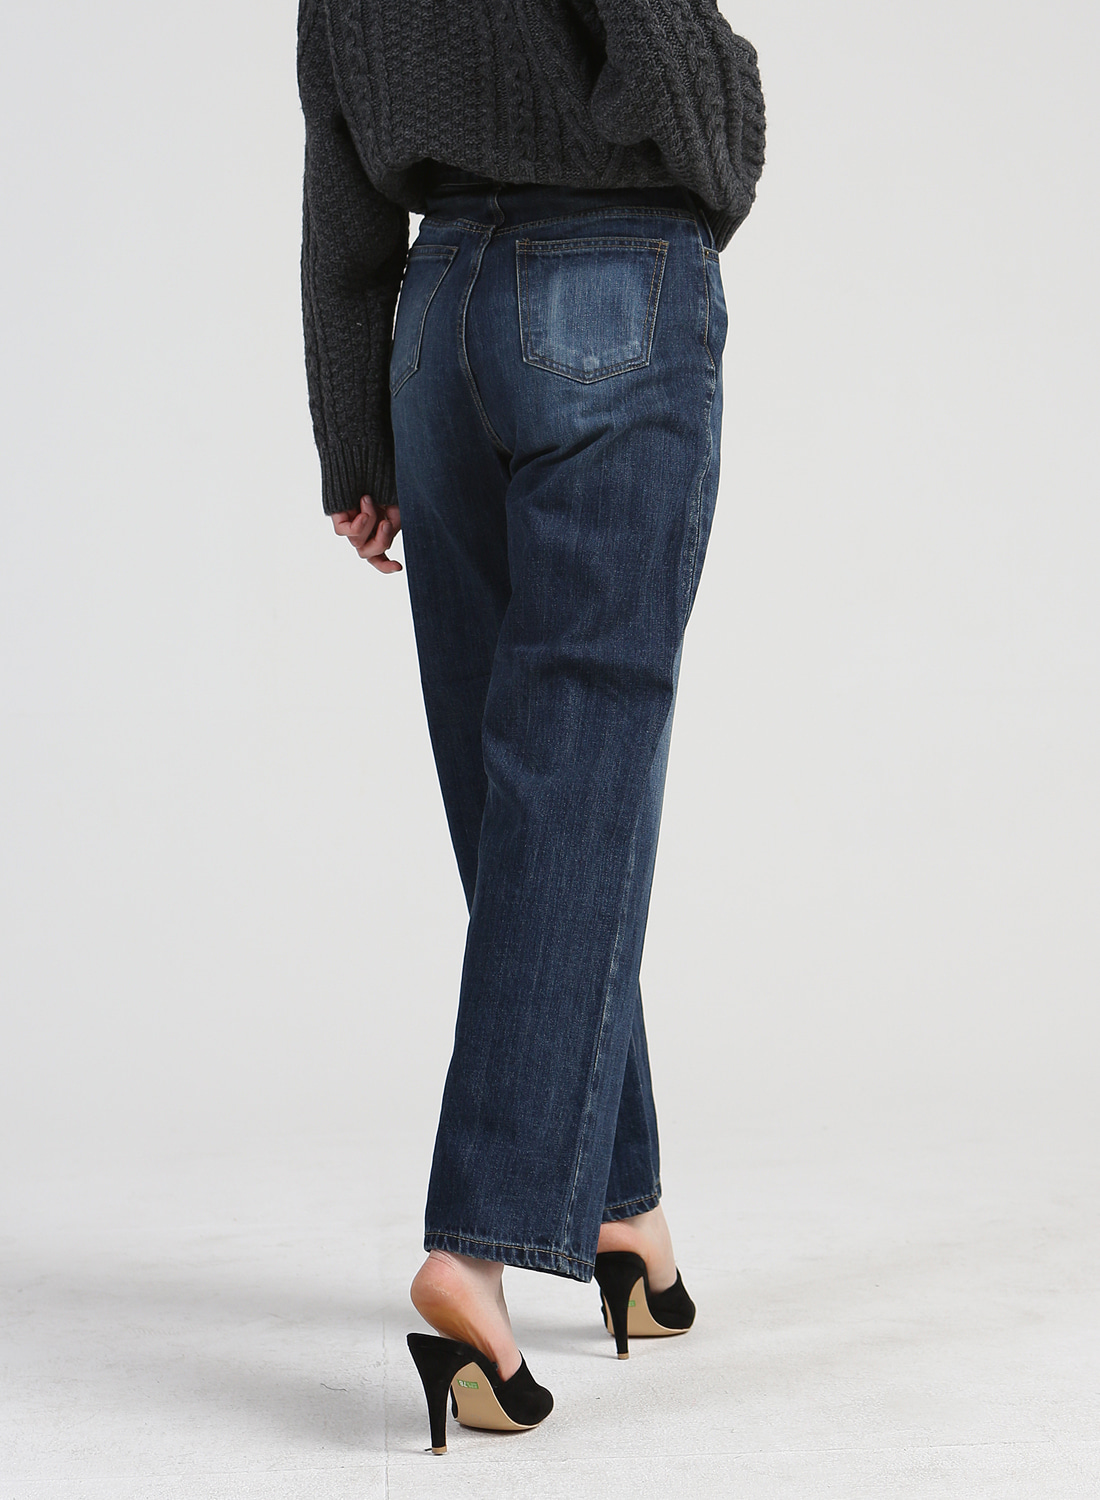 NEWTRO' LONG LOOMY JEANS